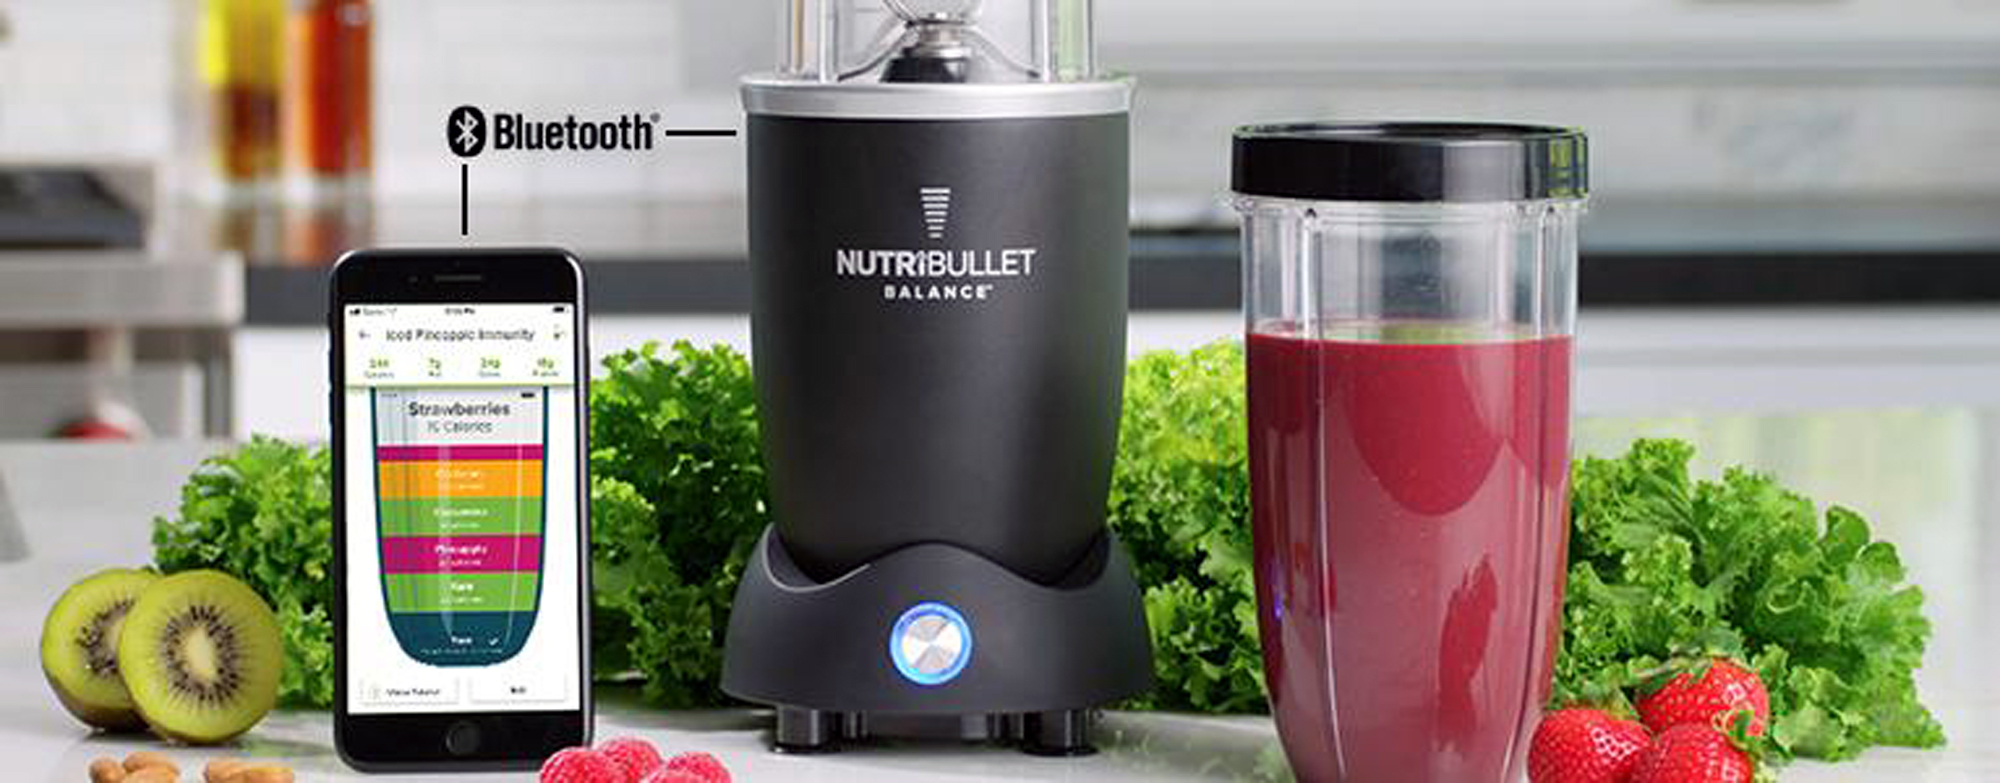 How to choose the best blender and food processor